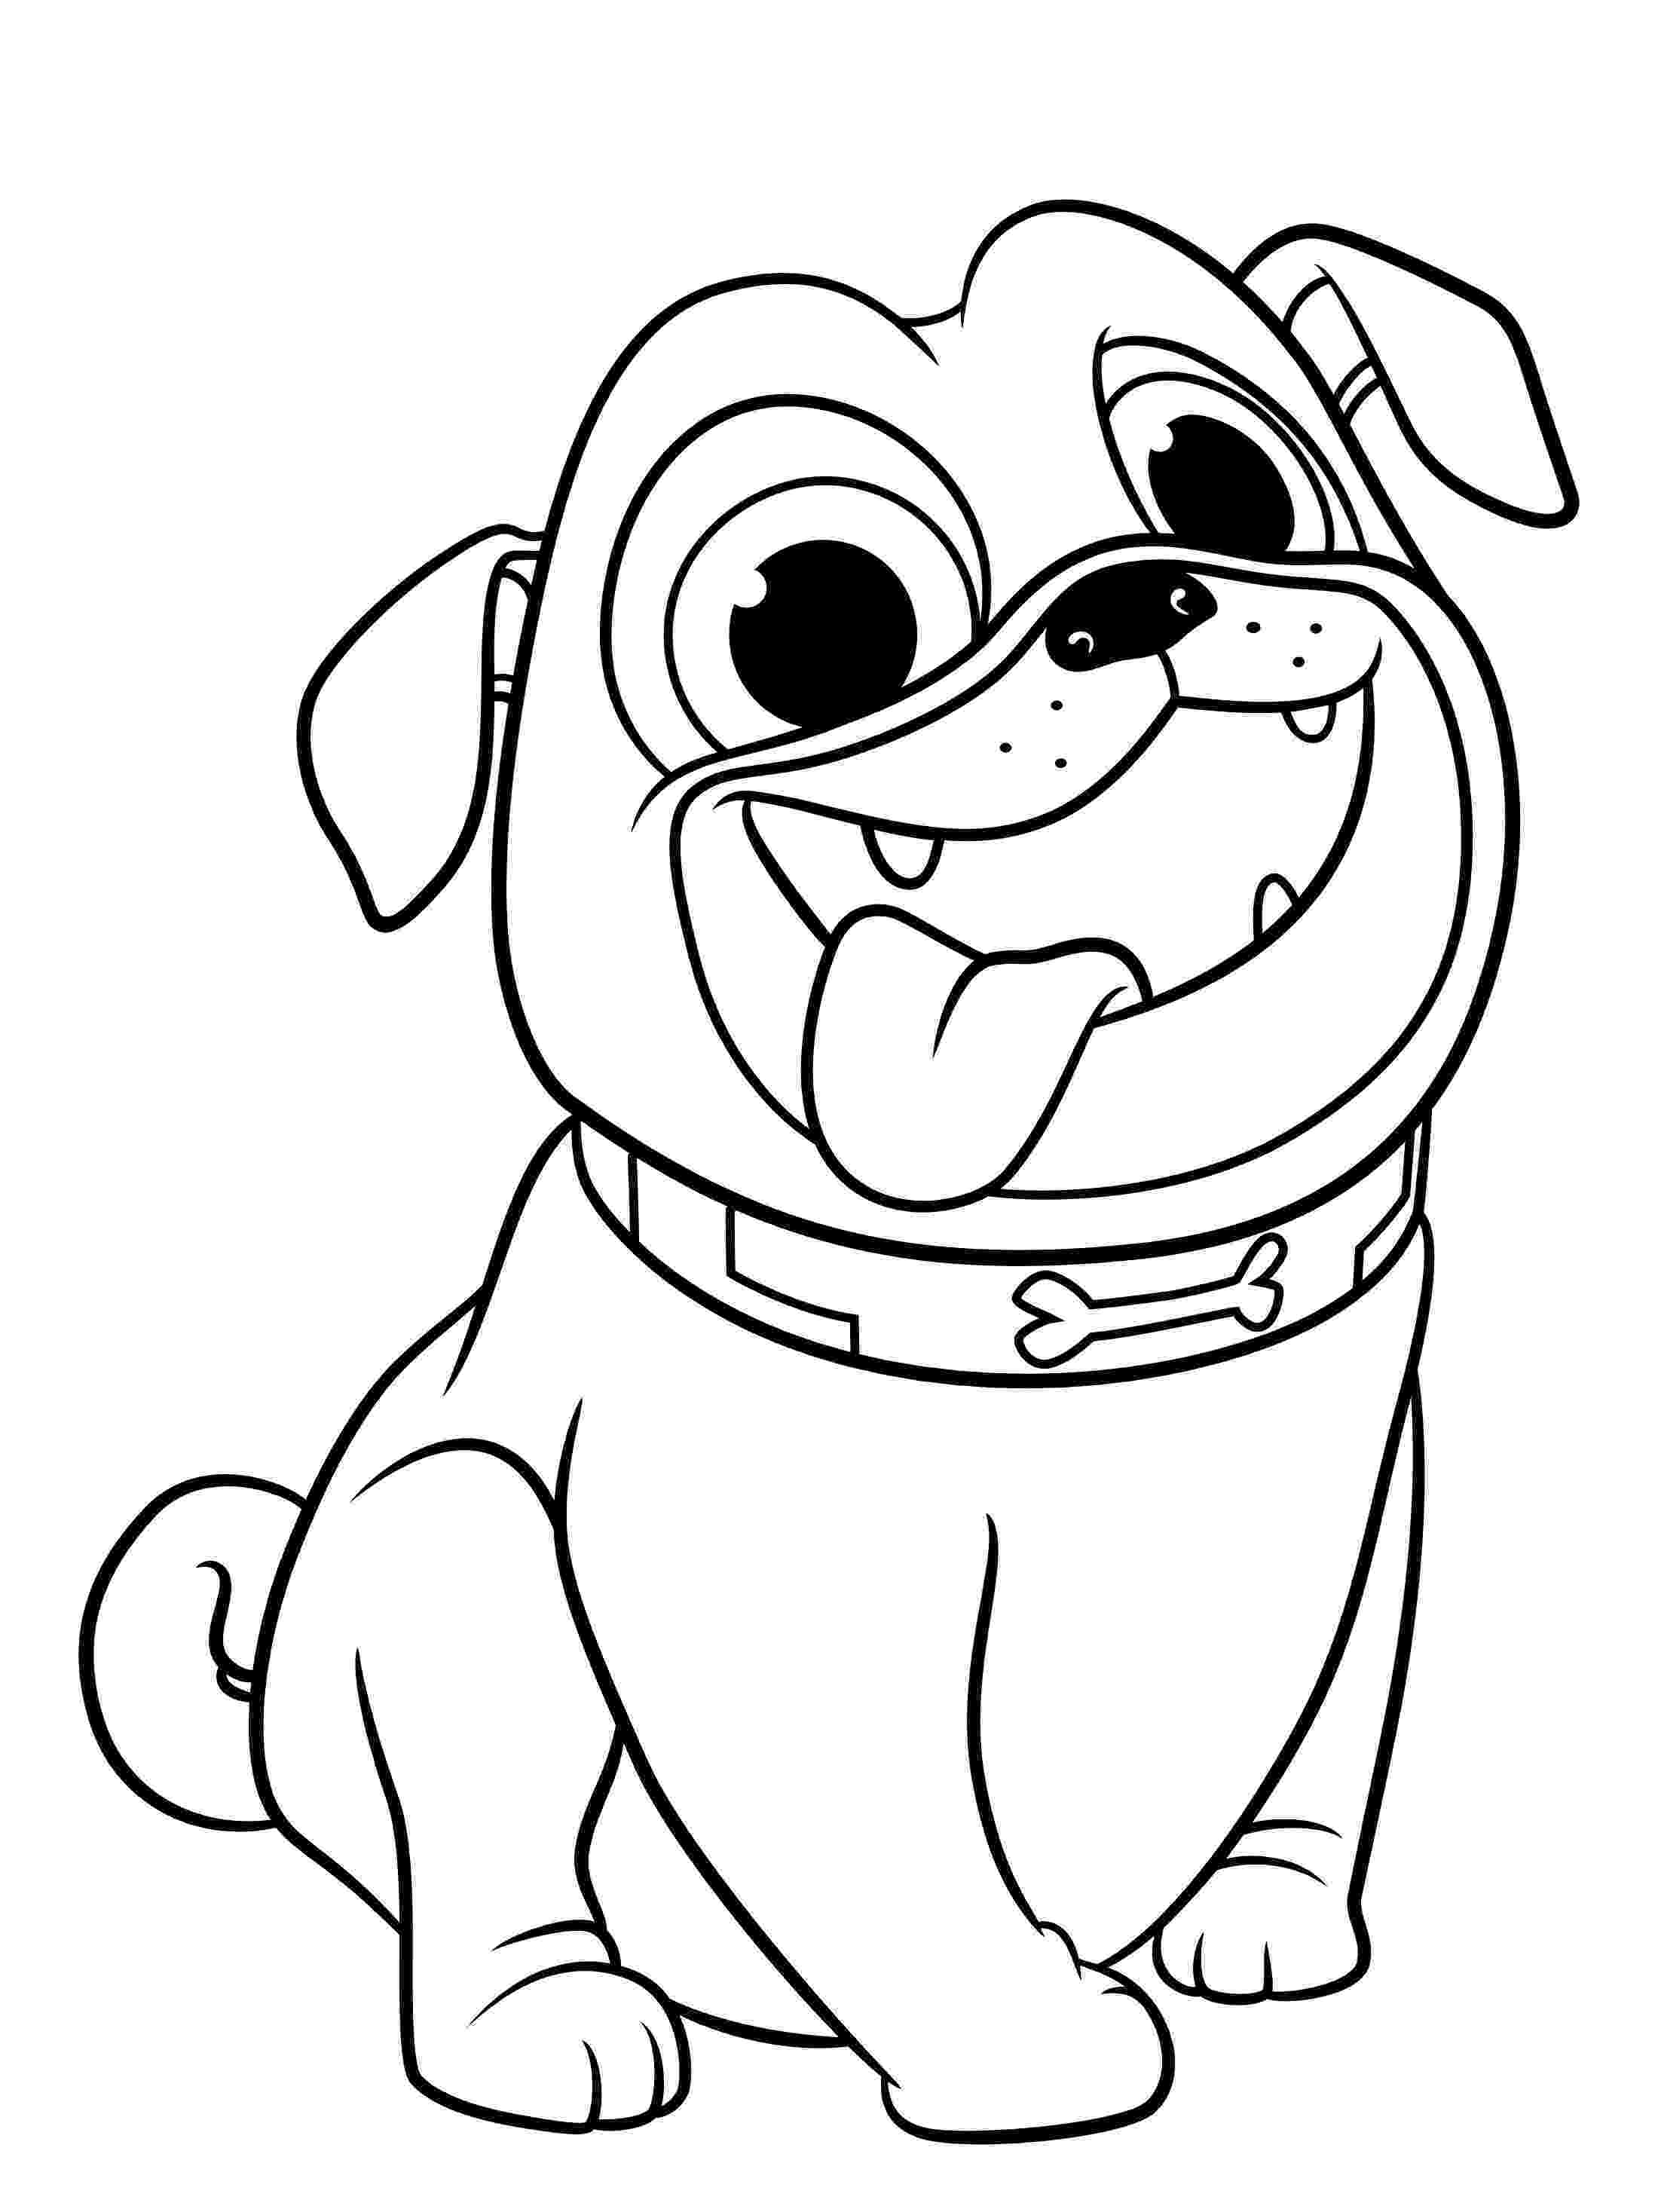 dog coloring sheets printable puppy coloring pages best coloring pages for kids printable dog sheets coloring